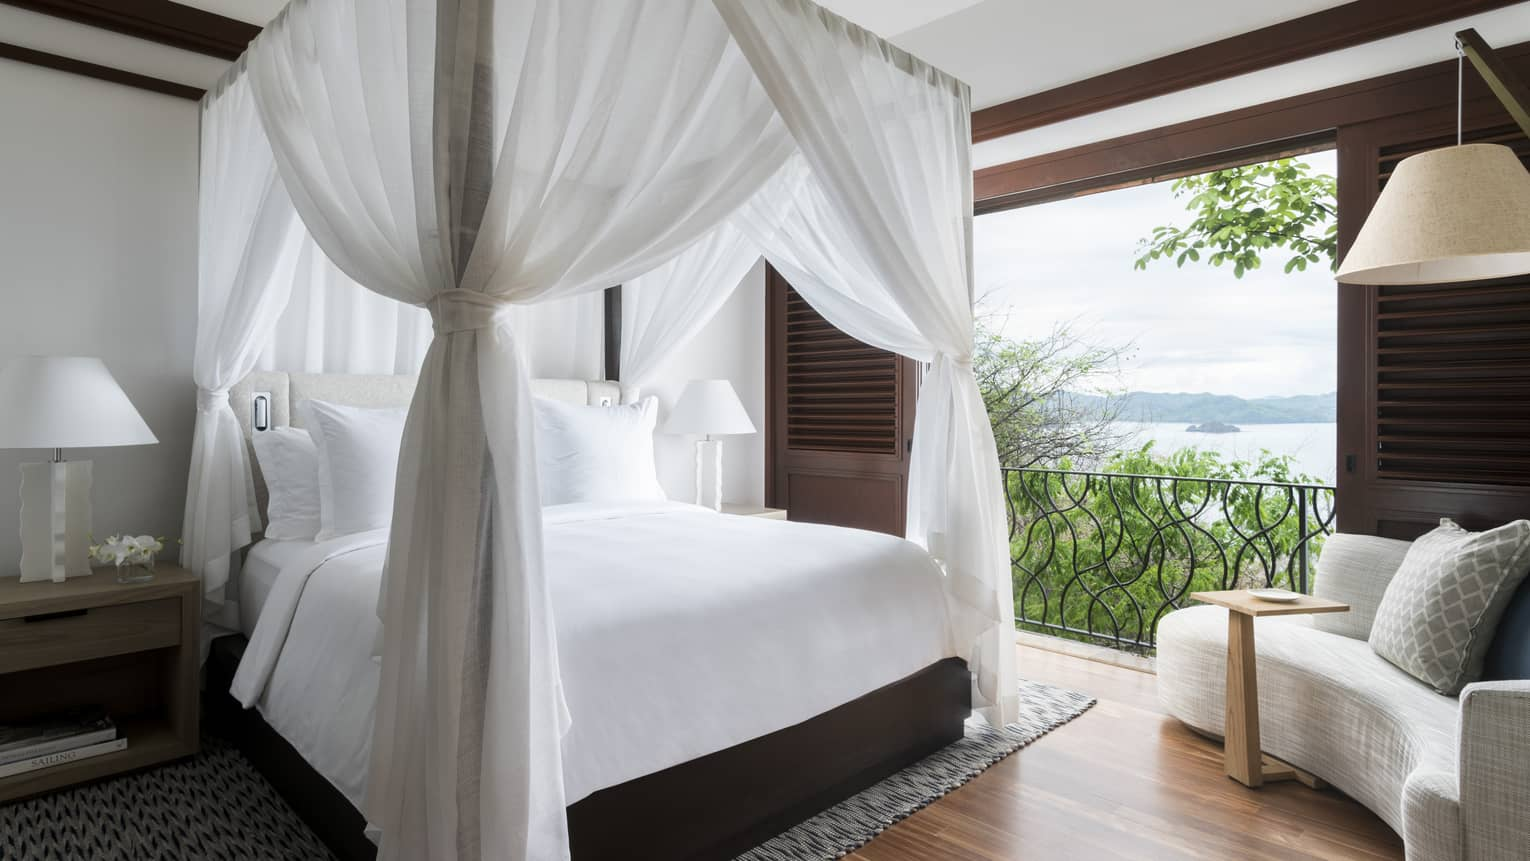 Canopy Bed with Open Door View